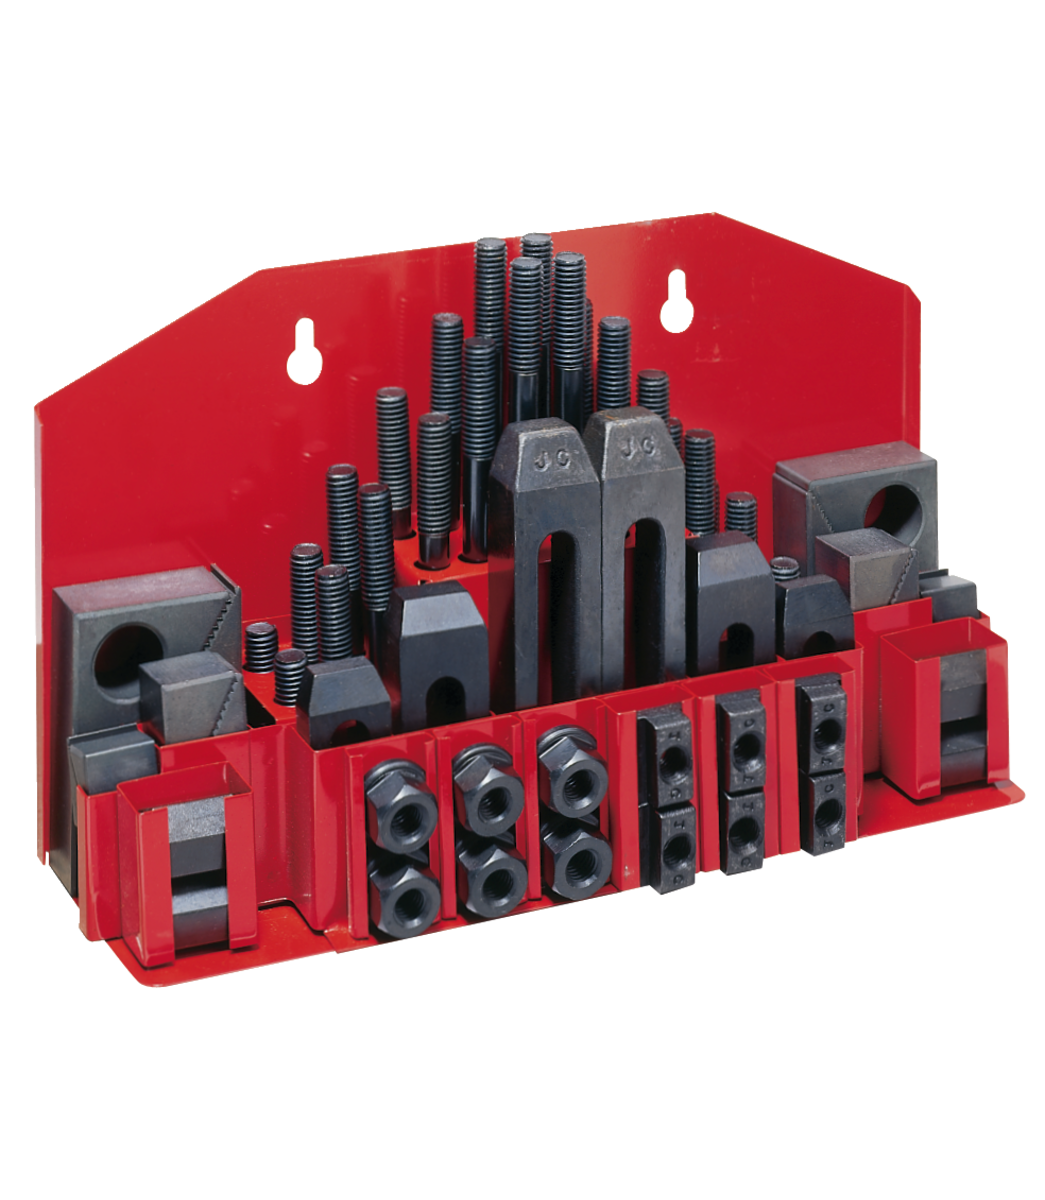 CK-58, 58-Piece Clamping Kit with Tray for T-Slot